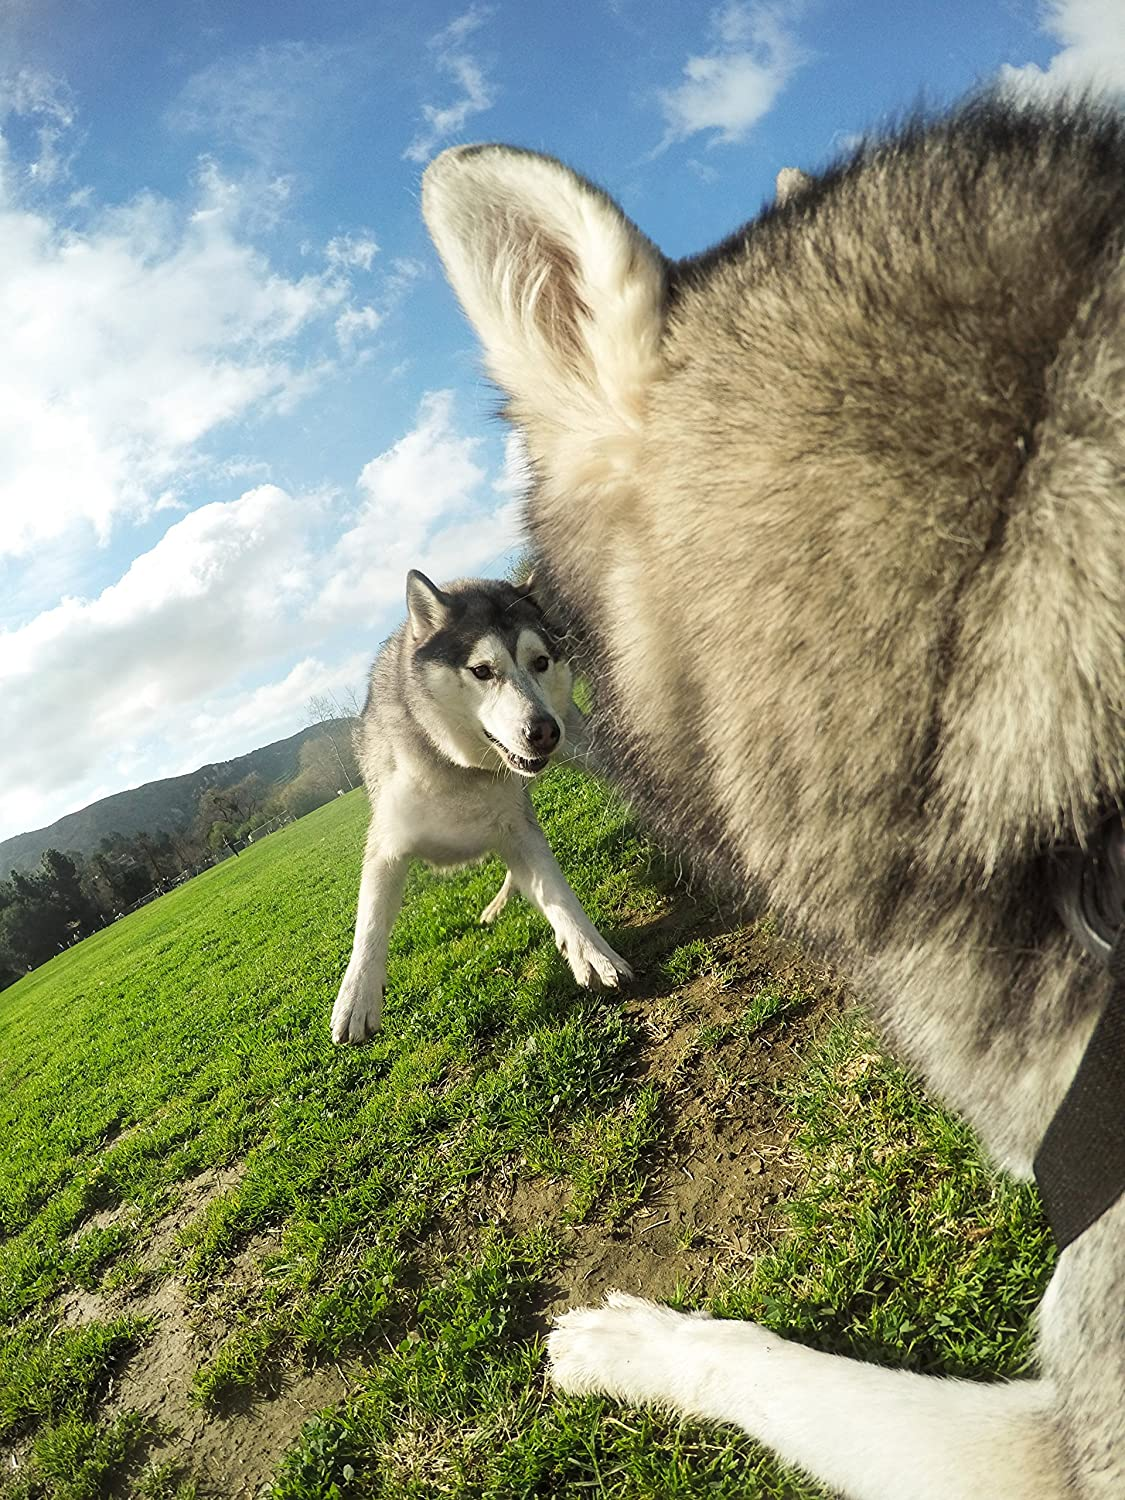 Dog Camera Shooting during Dog fight or play by GoPro, Available on Amazon